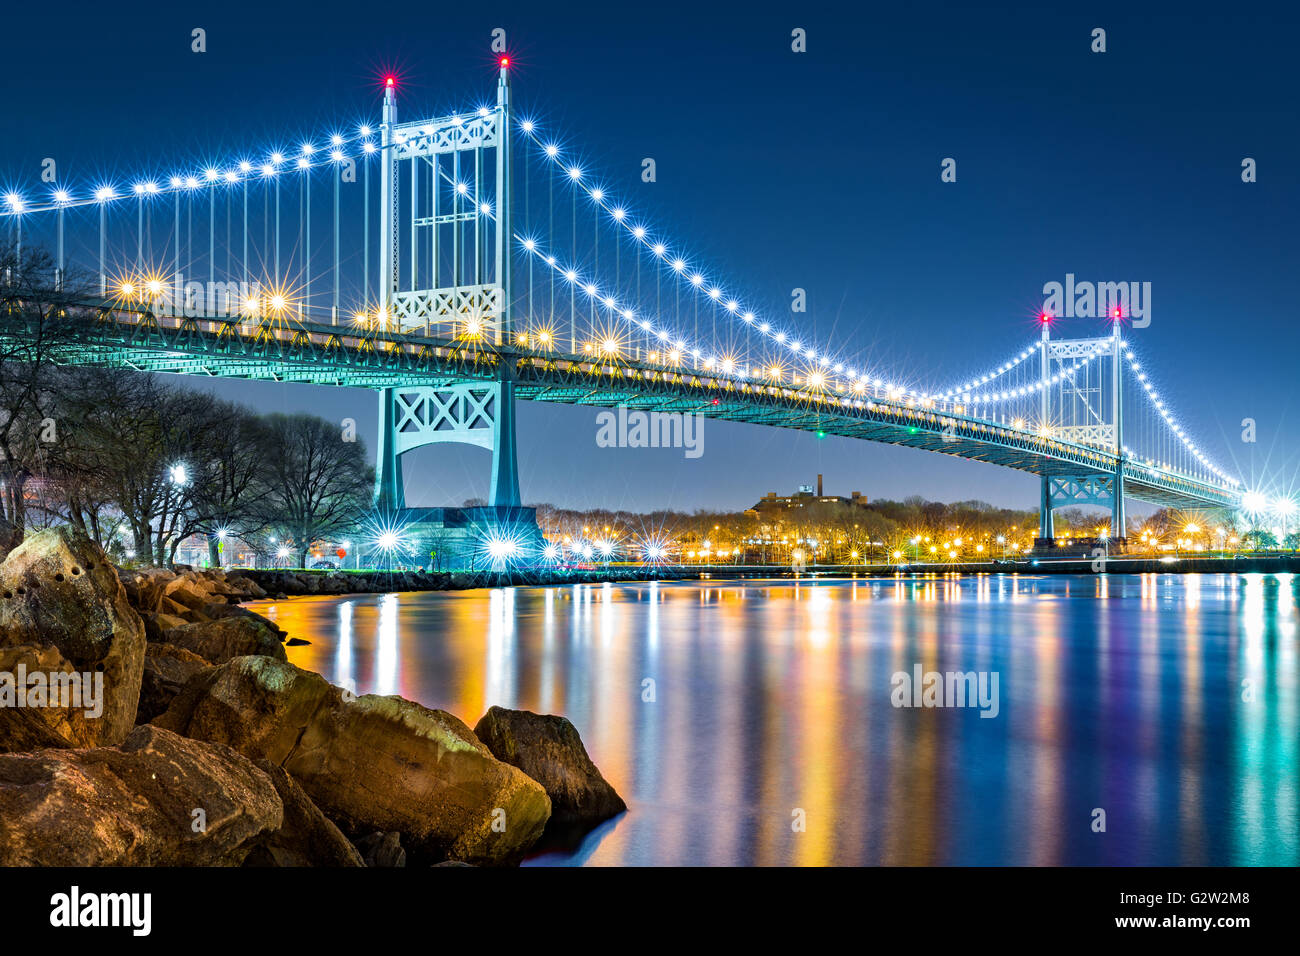 Robert F. Kennedy Bridge (aka Triboro Bridge) by night viewed from Randalls Island, New York - Stock Image